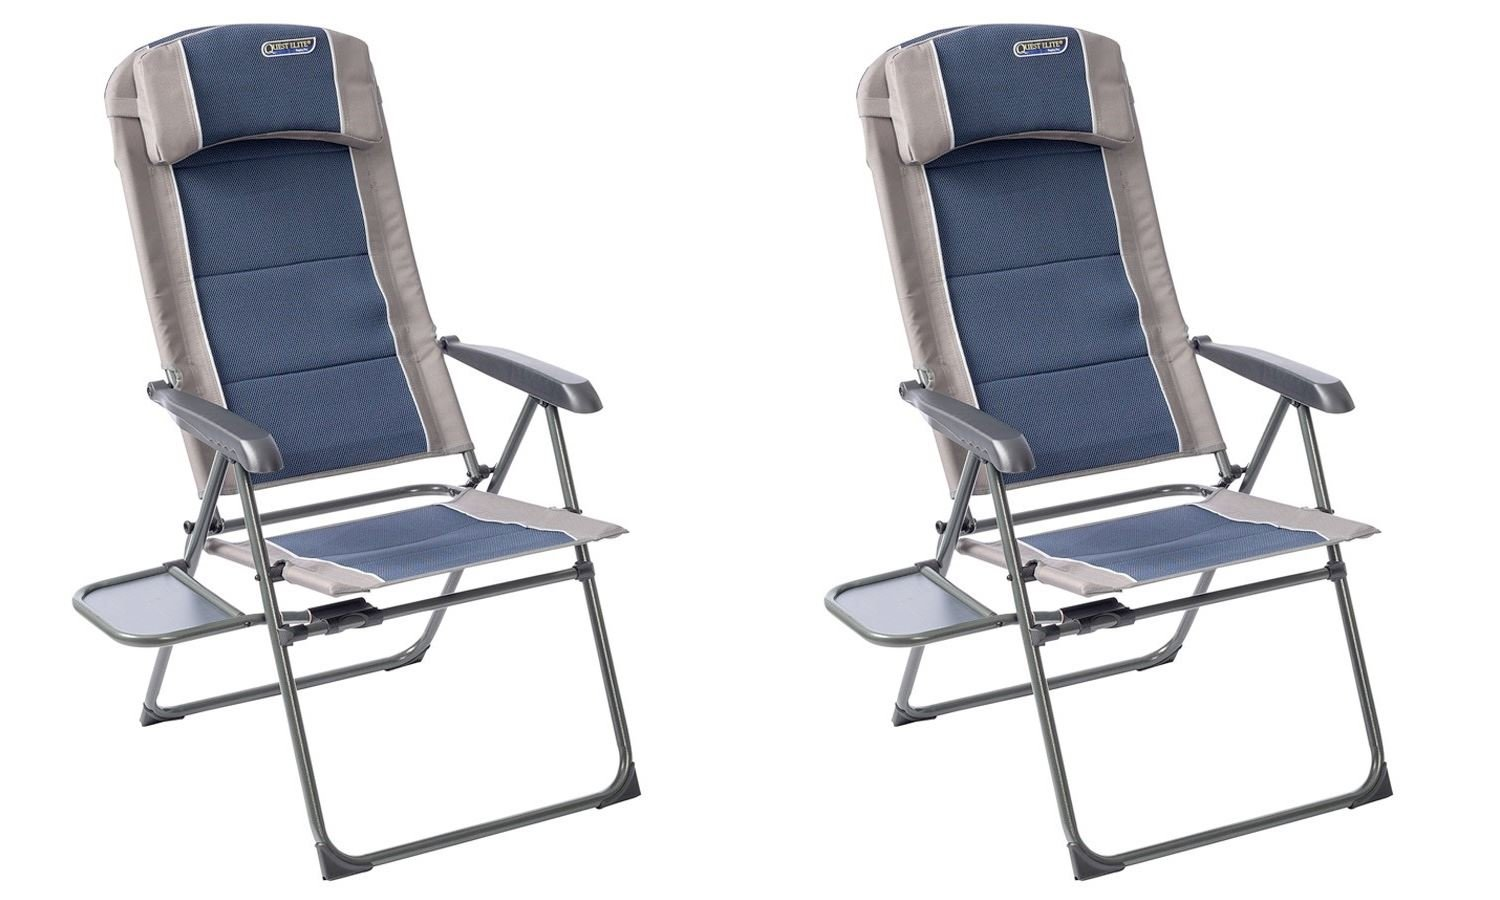 Camping & Hiking Camping Tables & Chairs Quest Elite Naples